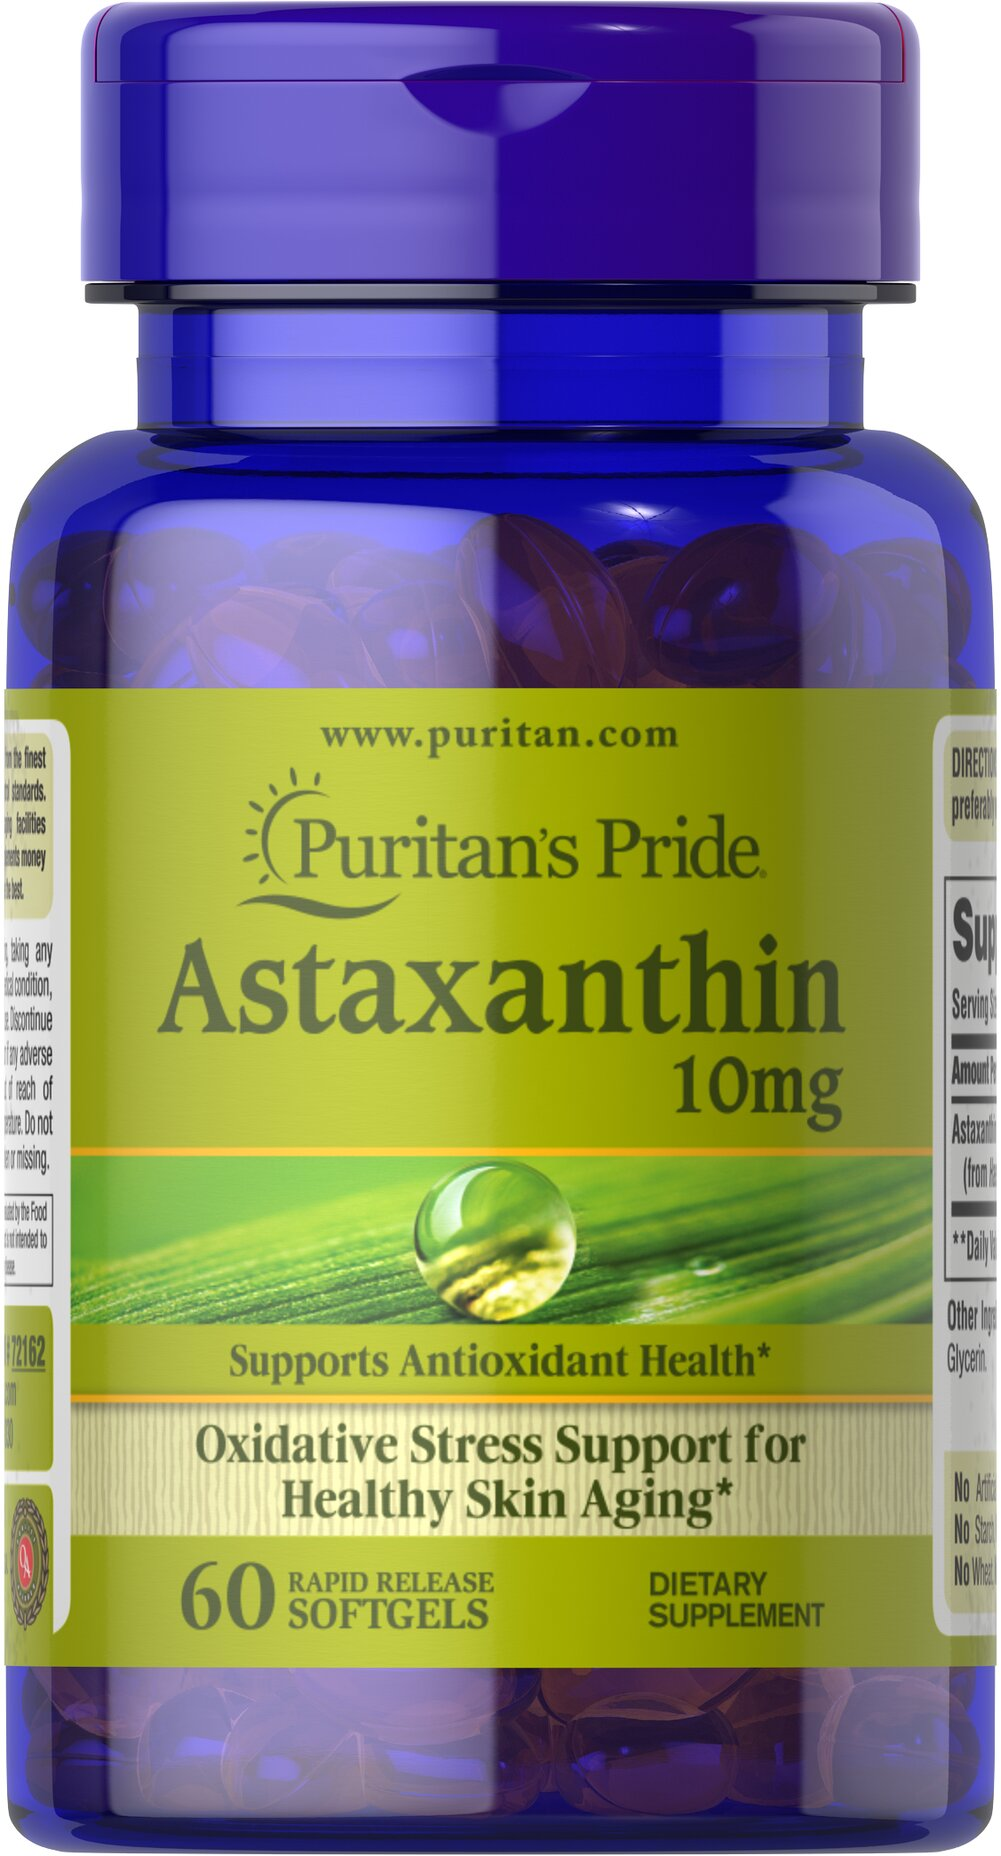 Astaxanthin 10 mg <p>Powerful Antioxidant**</p>  <p>Suited for Stressful Lifestyles**</p>    <p>Astaxanthin promotes antioxidant health, which helps fight the cell damaging free radicals that can lead to oxidative stress which may contribute to the premature aging of cells.**</p> 60 Softgels 10 mg $55.99